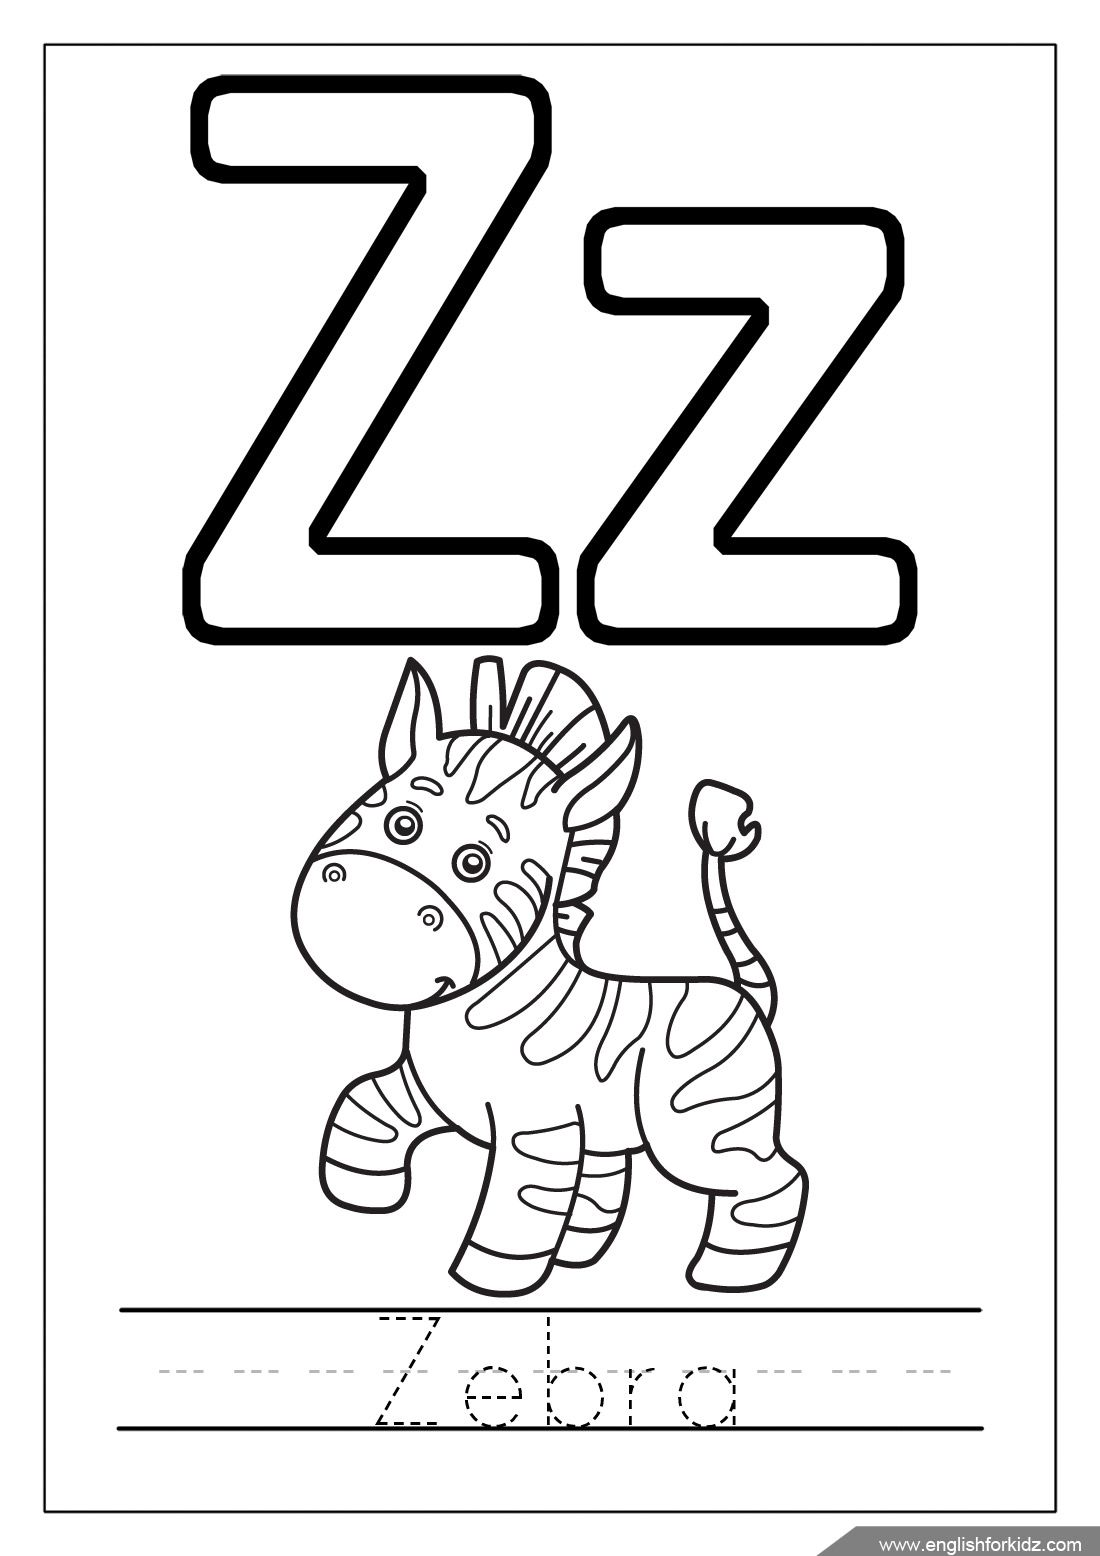 Alphabet Coloring Page Letter Z Coloring Zebra Coloring Letter A Coloring Pages Alphabet Coloring Pages Abc Coloring Pages